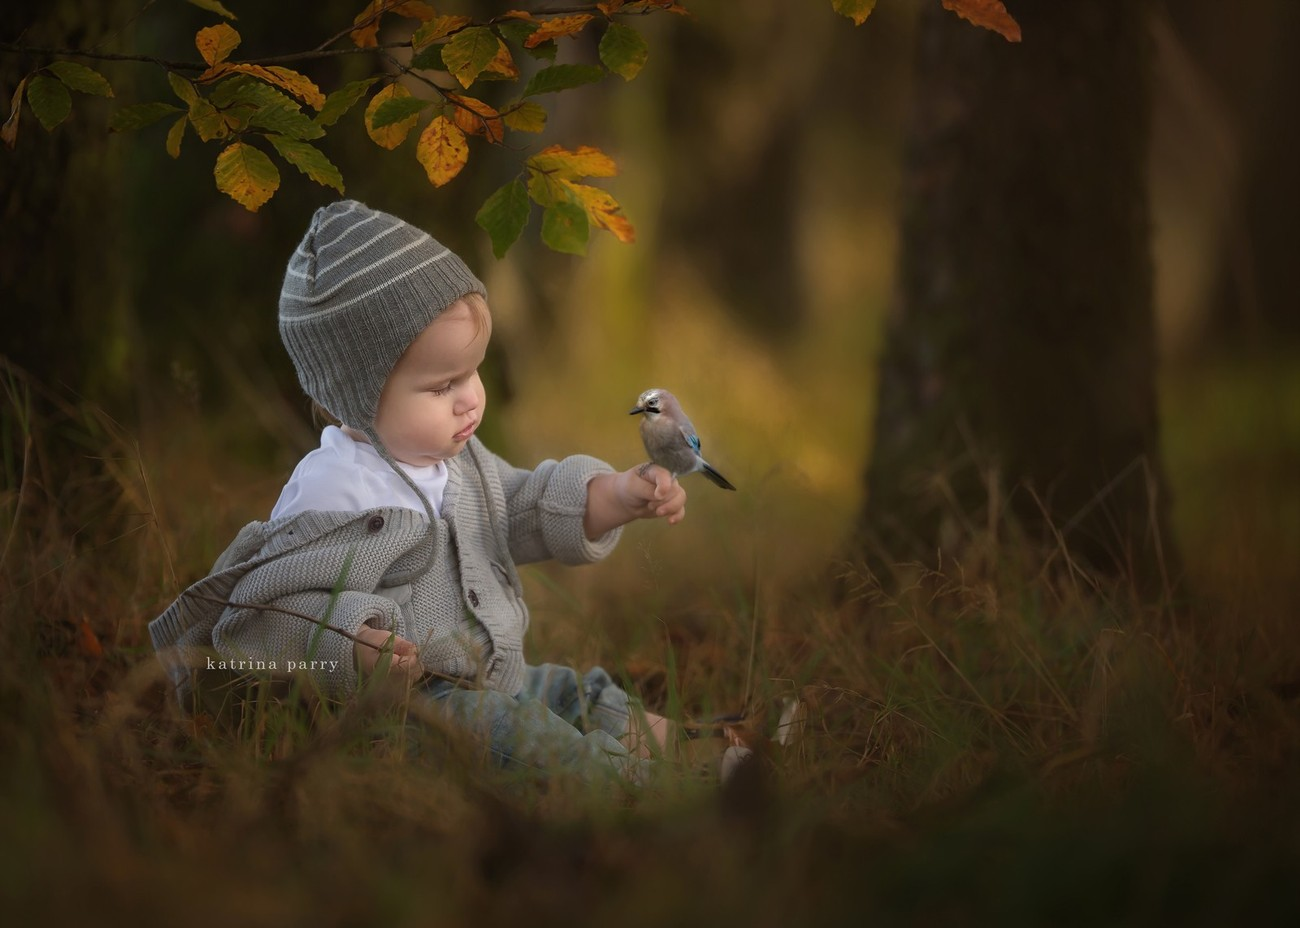 3 Great Tips For Photographing Kids